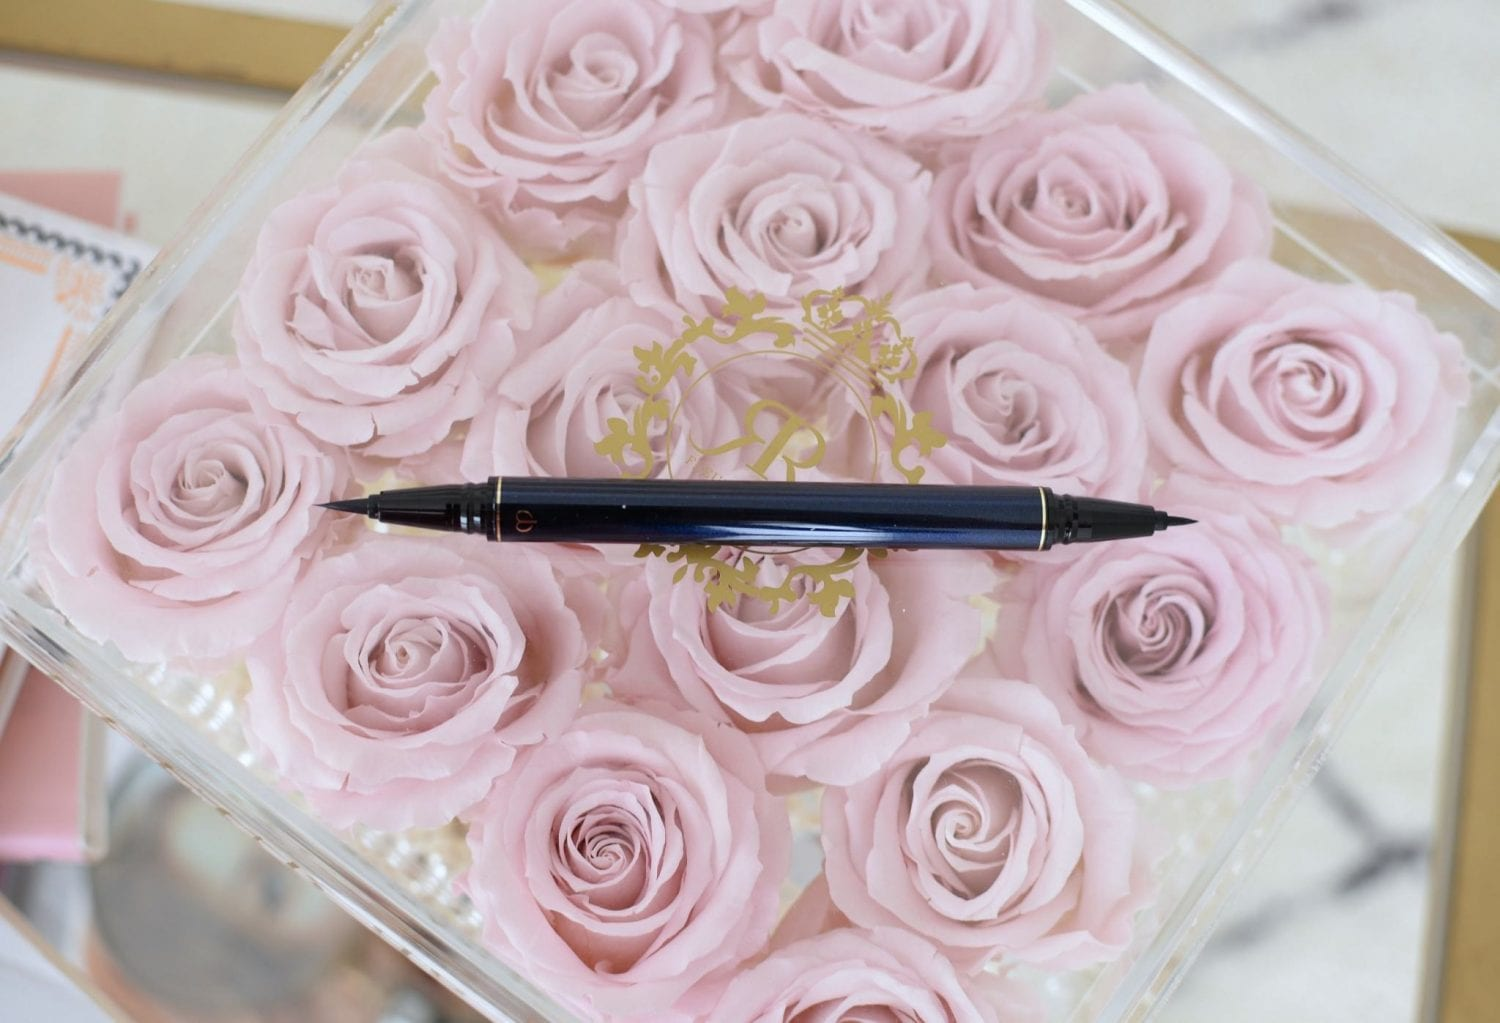 Intensifying Liquid Eyeliner from Clé de Peau | The Pink Millennial